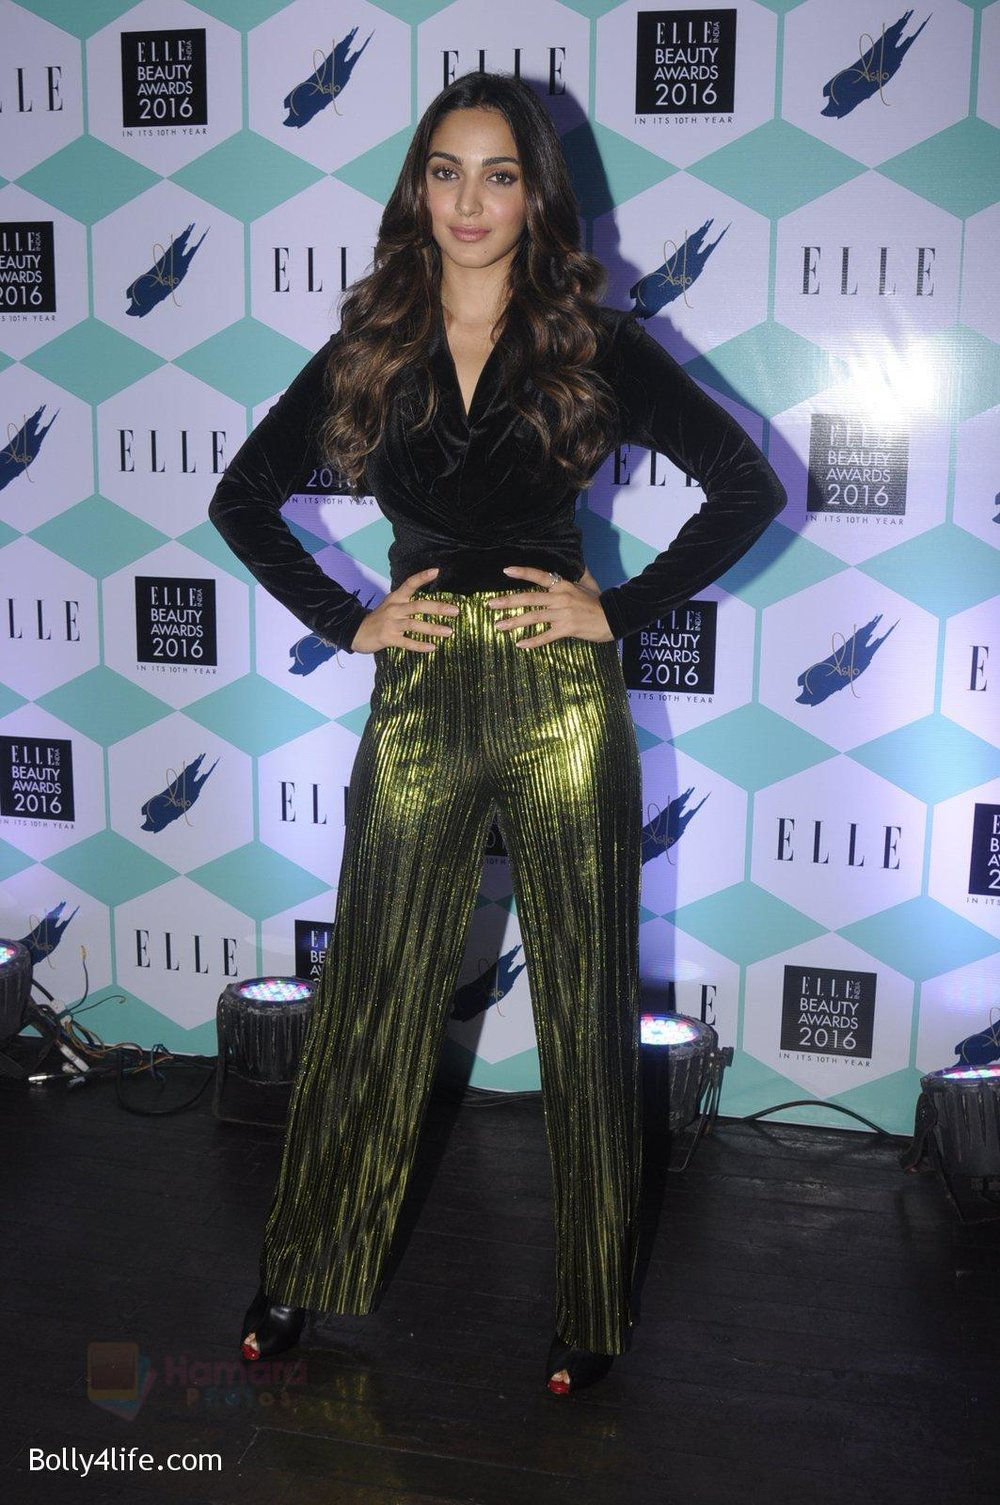 Kiara-Advani-at-Elle-Beauty-Awards-on-5th-Oct-2016-41.jpg